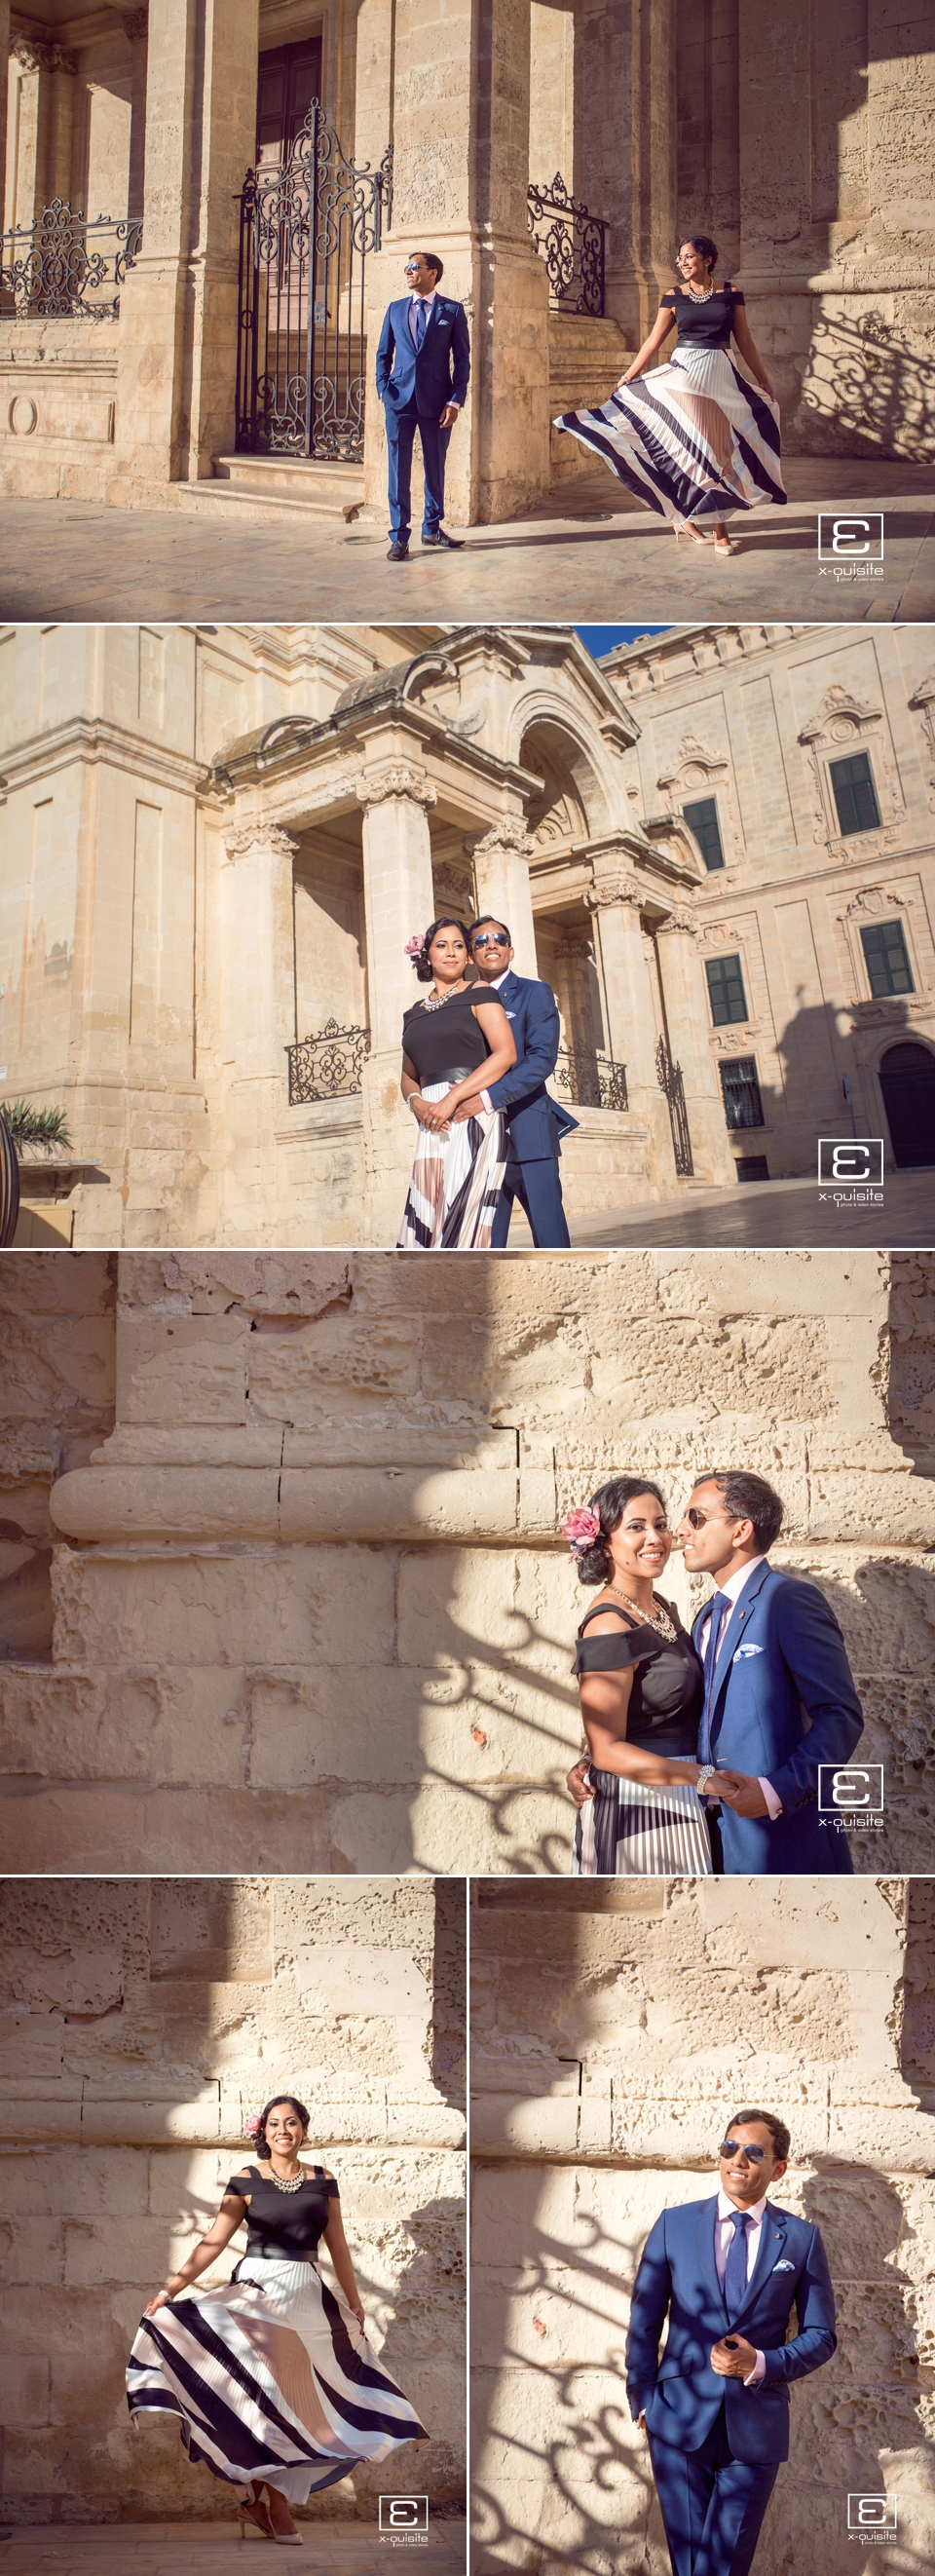 Malta_Pre_Wedding_shoot_07